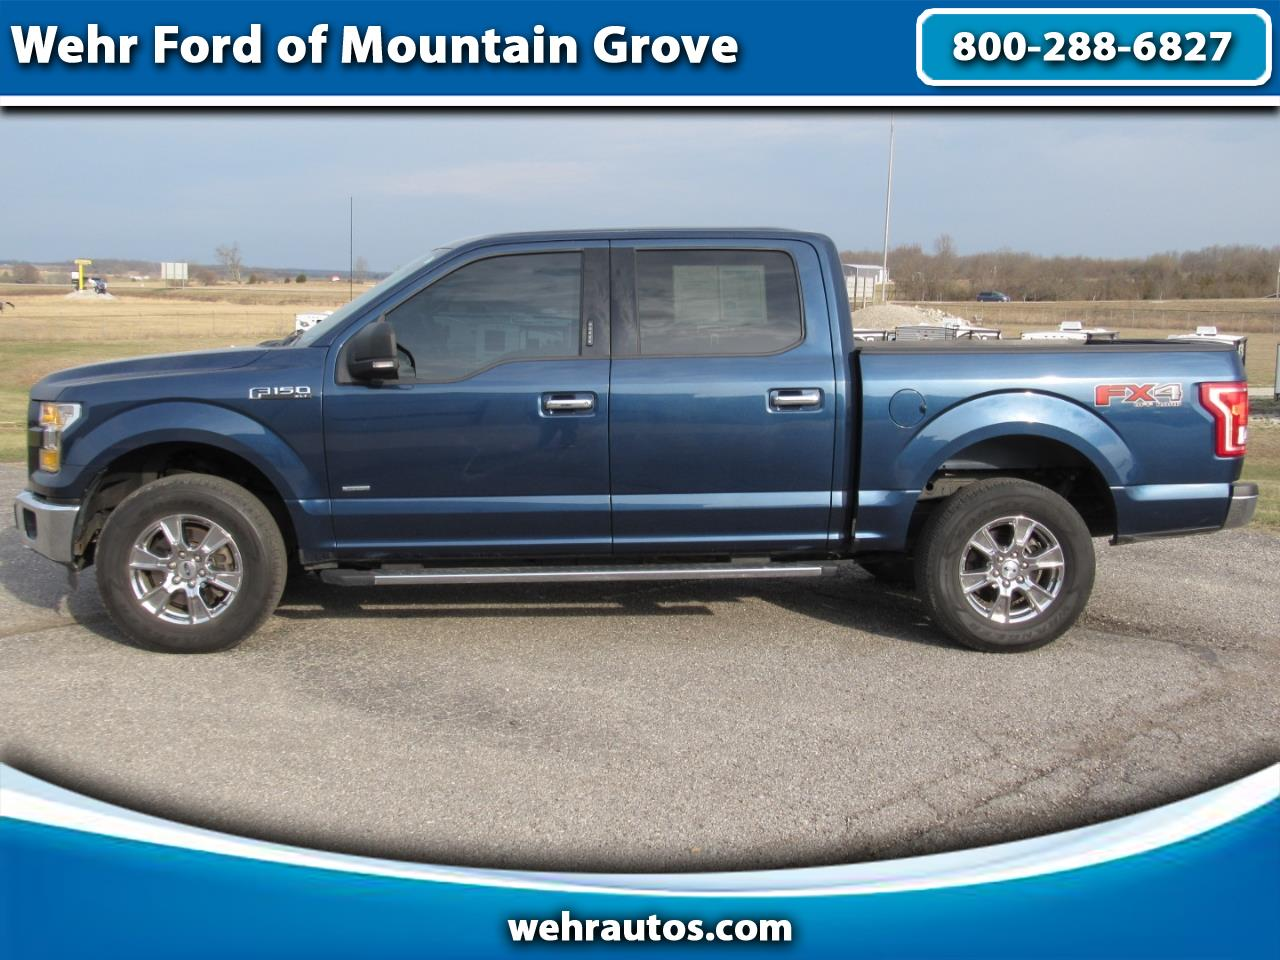 2015 Ford F-150 4WD Supercrew 4x4 XLT FX4